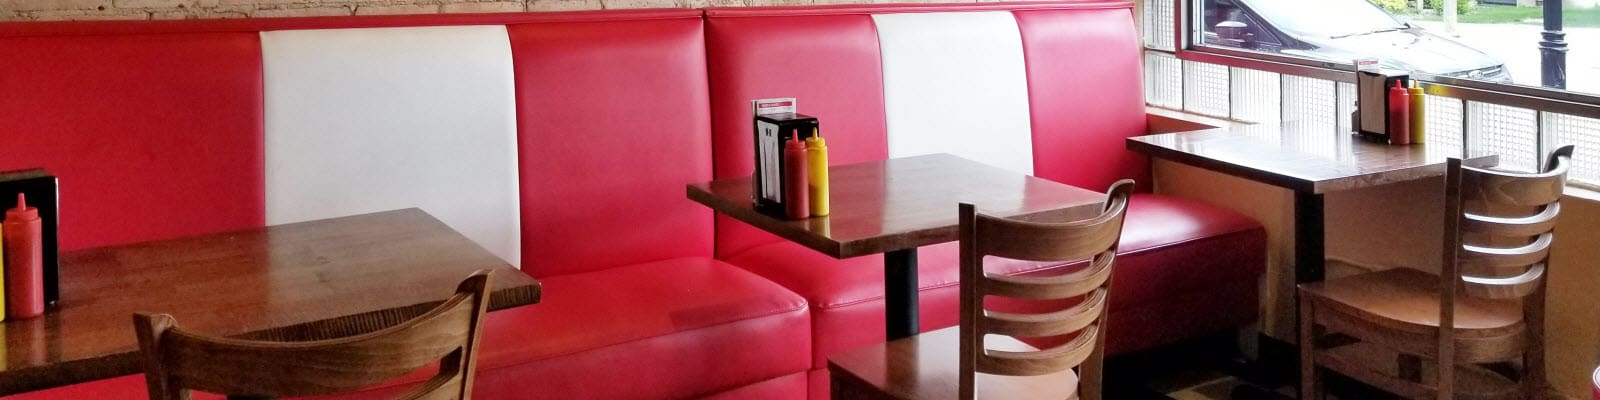 Restaurant Wall Bench Seating